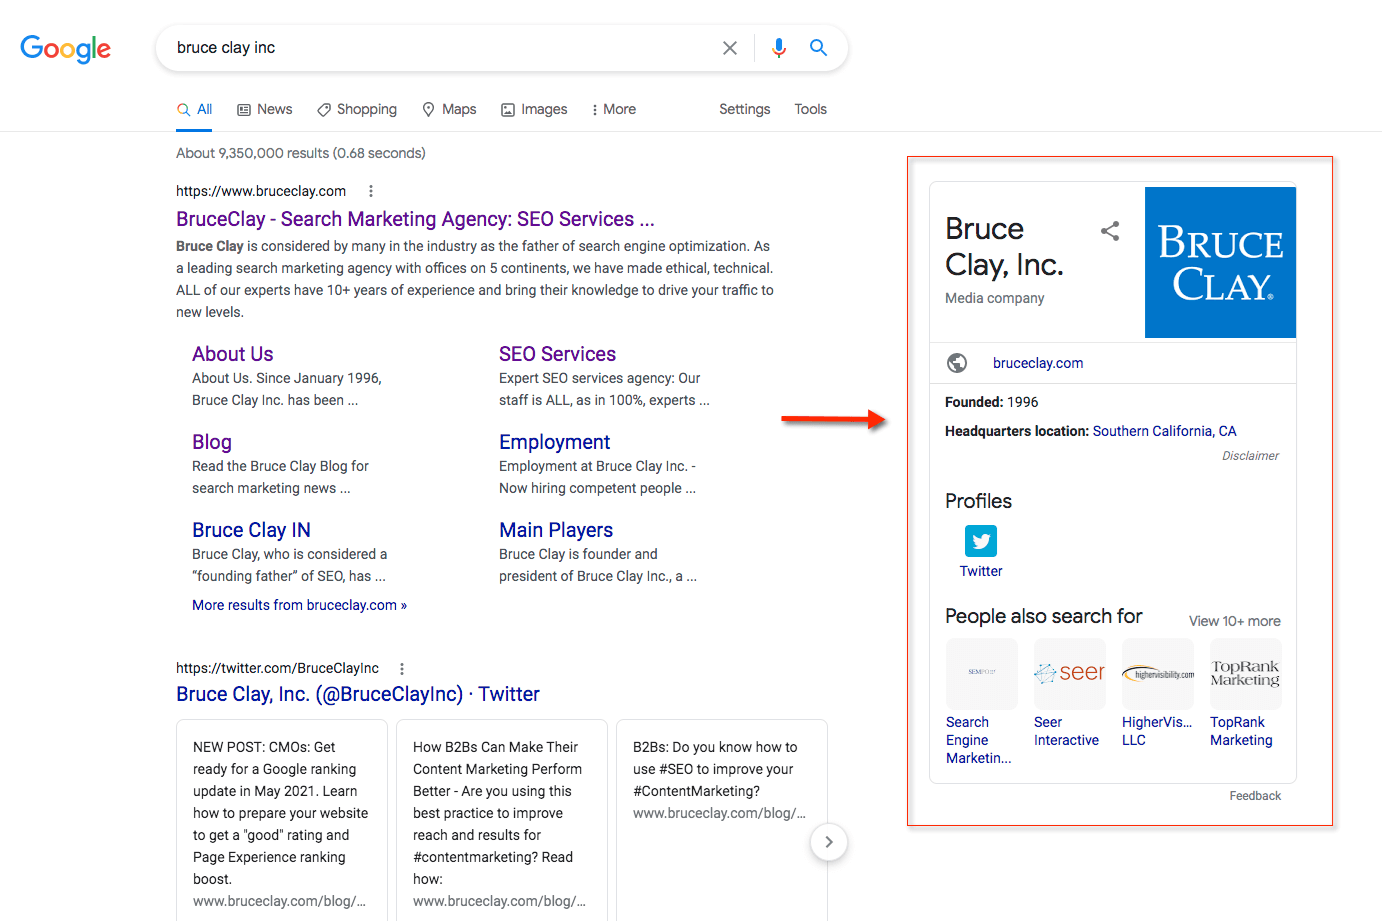 A Google SERP knowledge panel of Bruce Clay Inc.